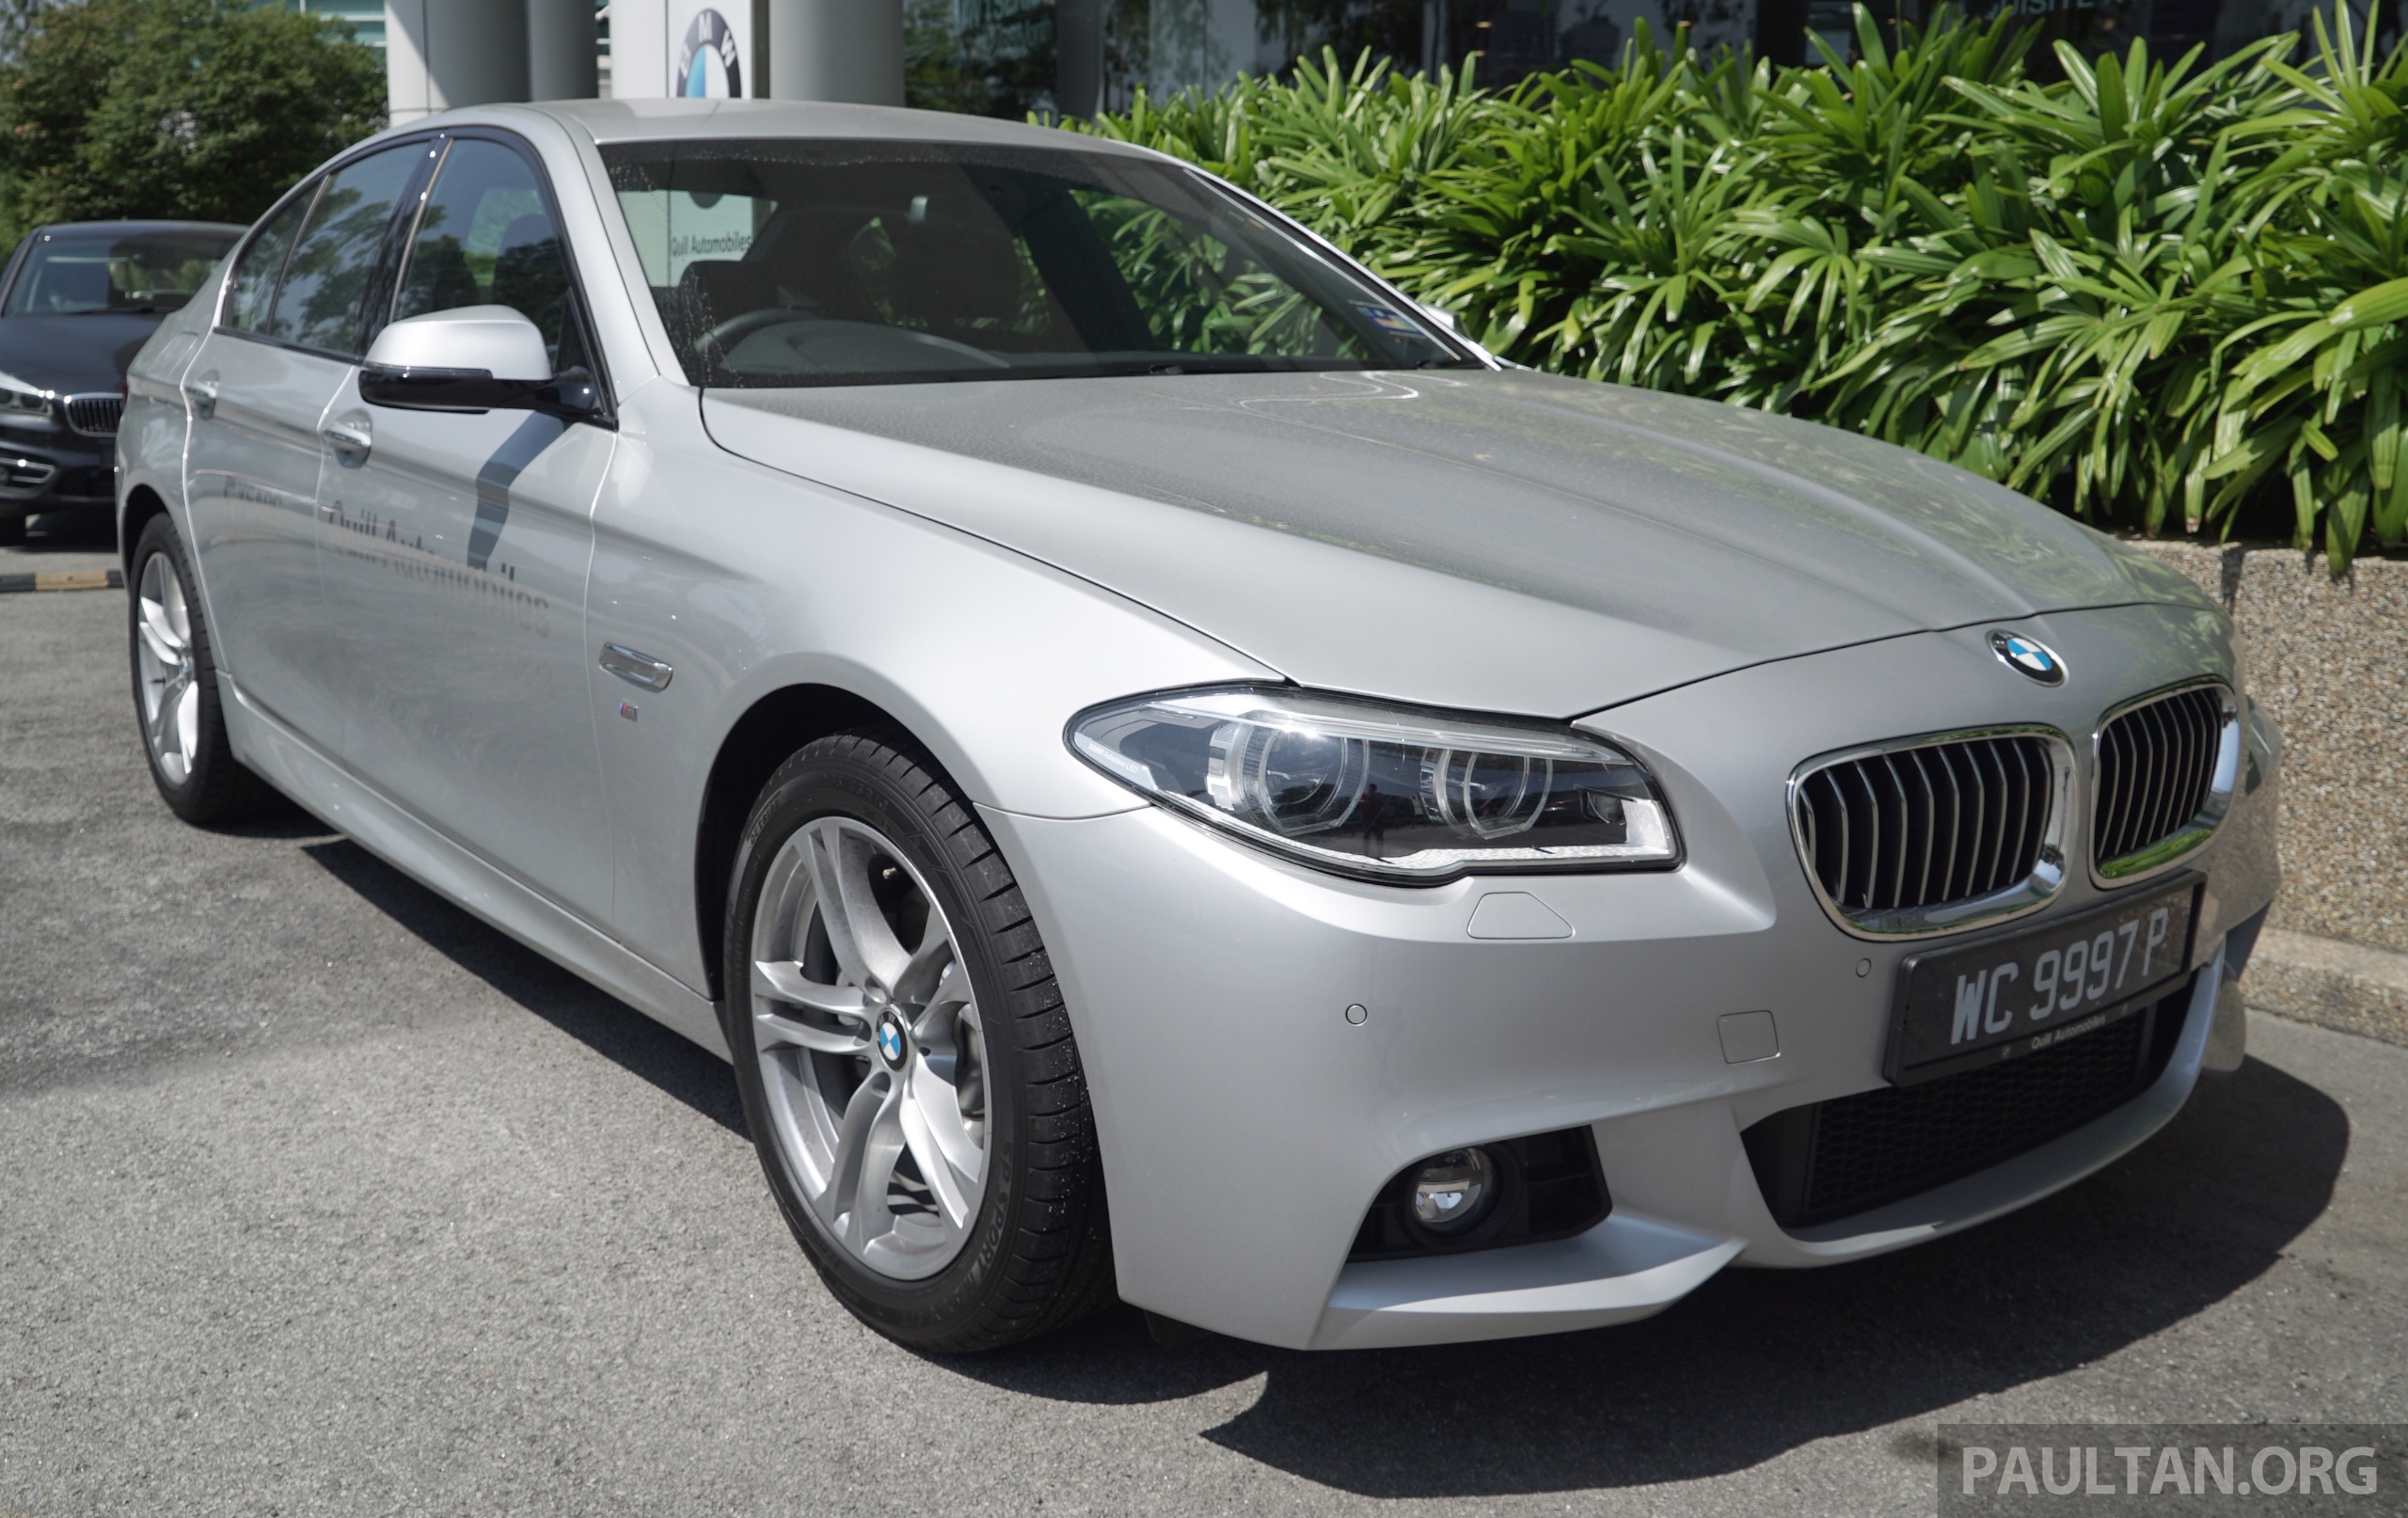 2016 bmw 520d m sport 520i m sport 528i m sport all updated in malaysia eev prices from. Black Bedroom Furniture Sets. Home Design Ideas